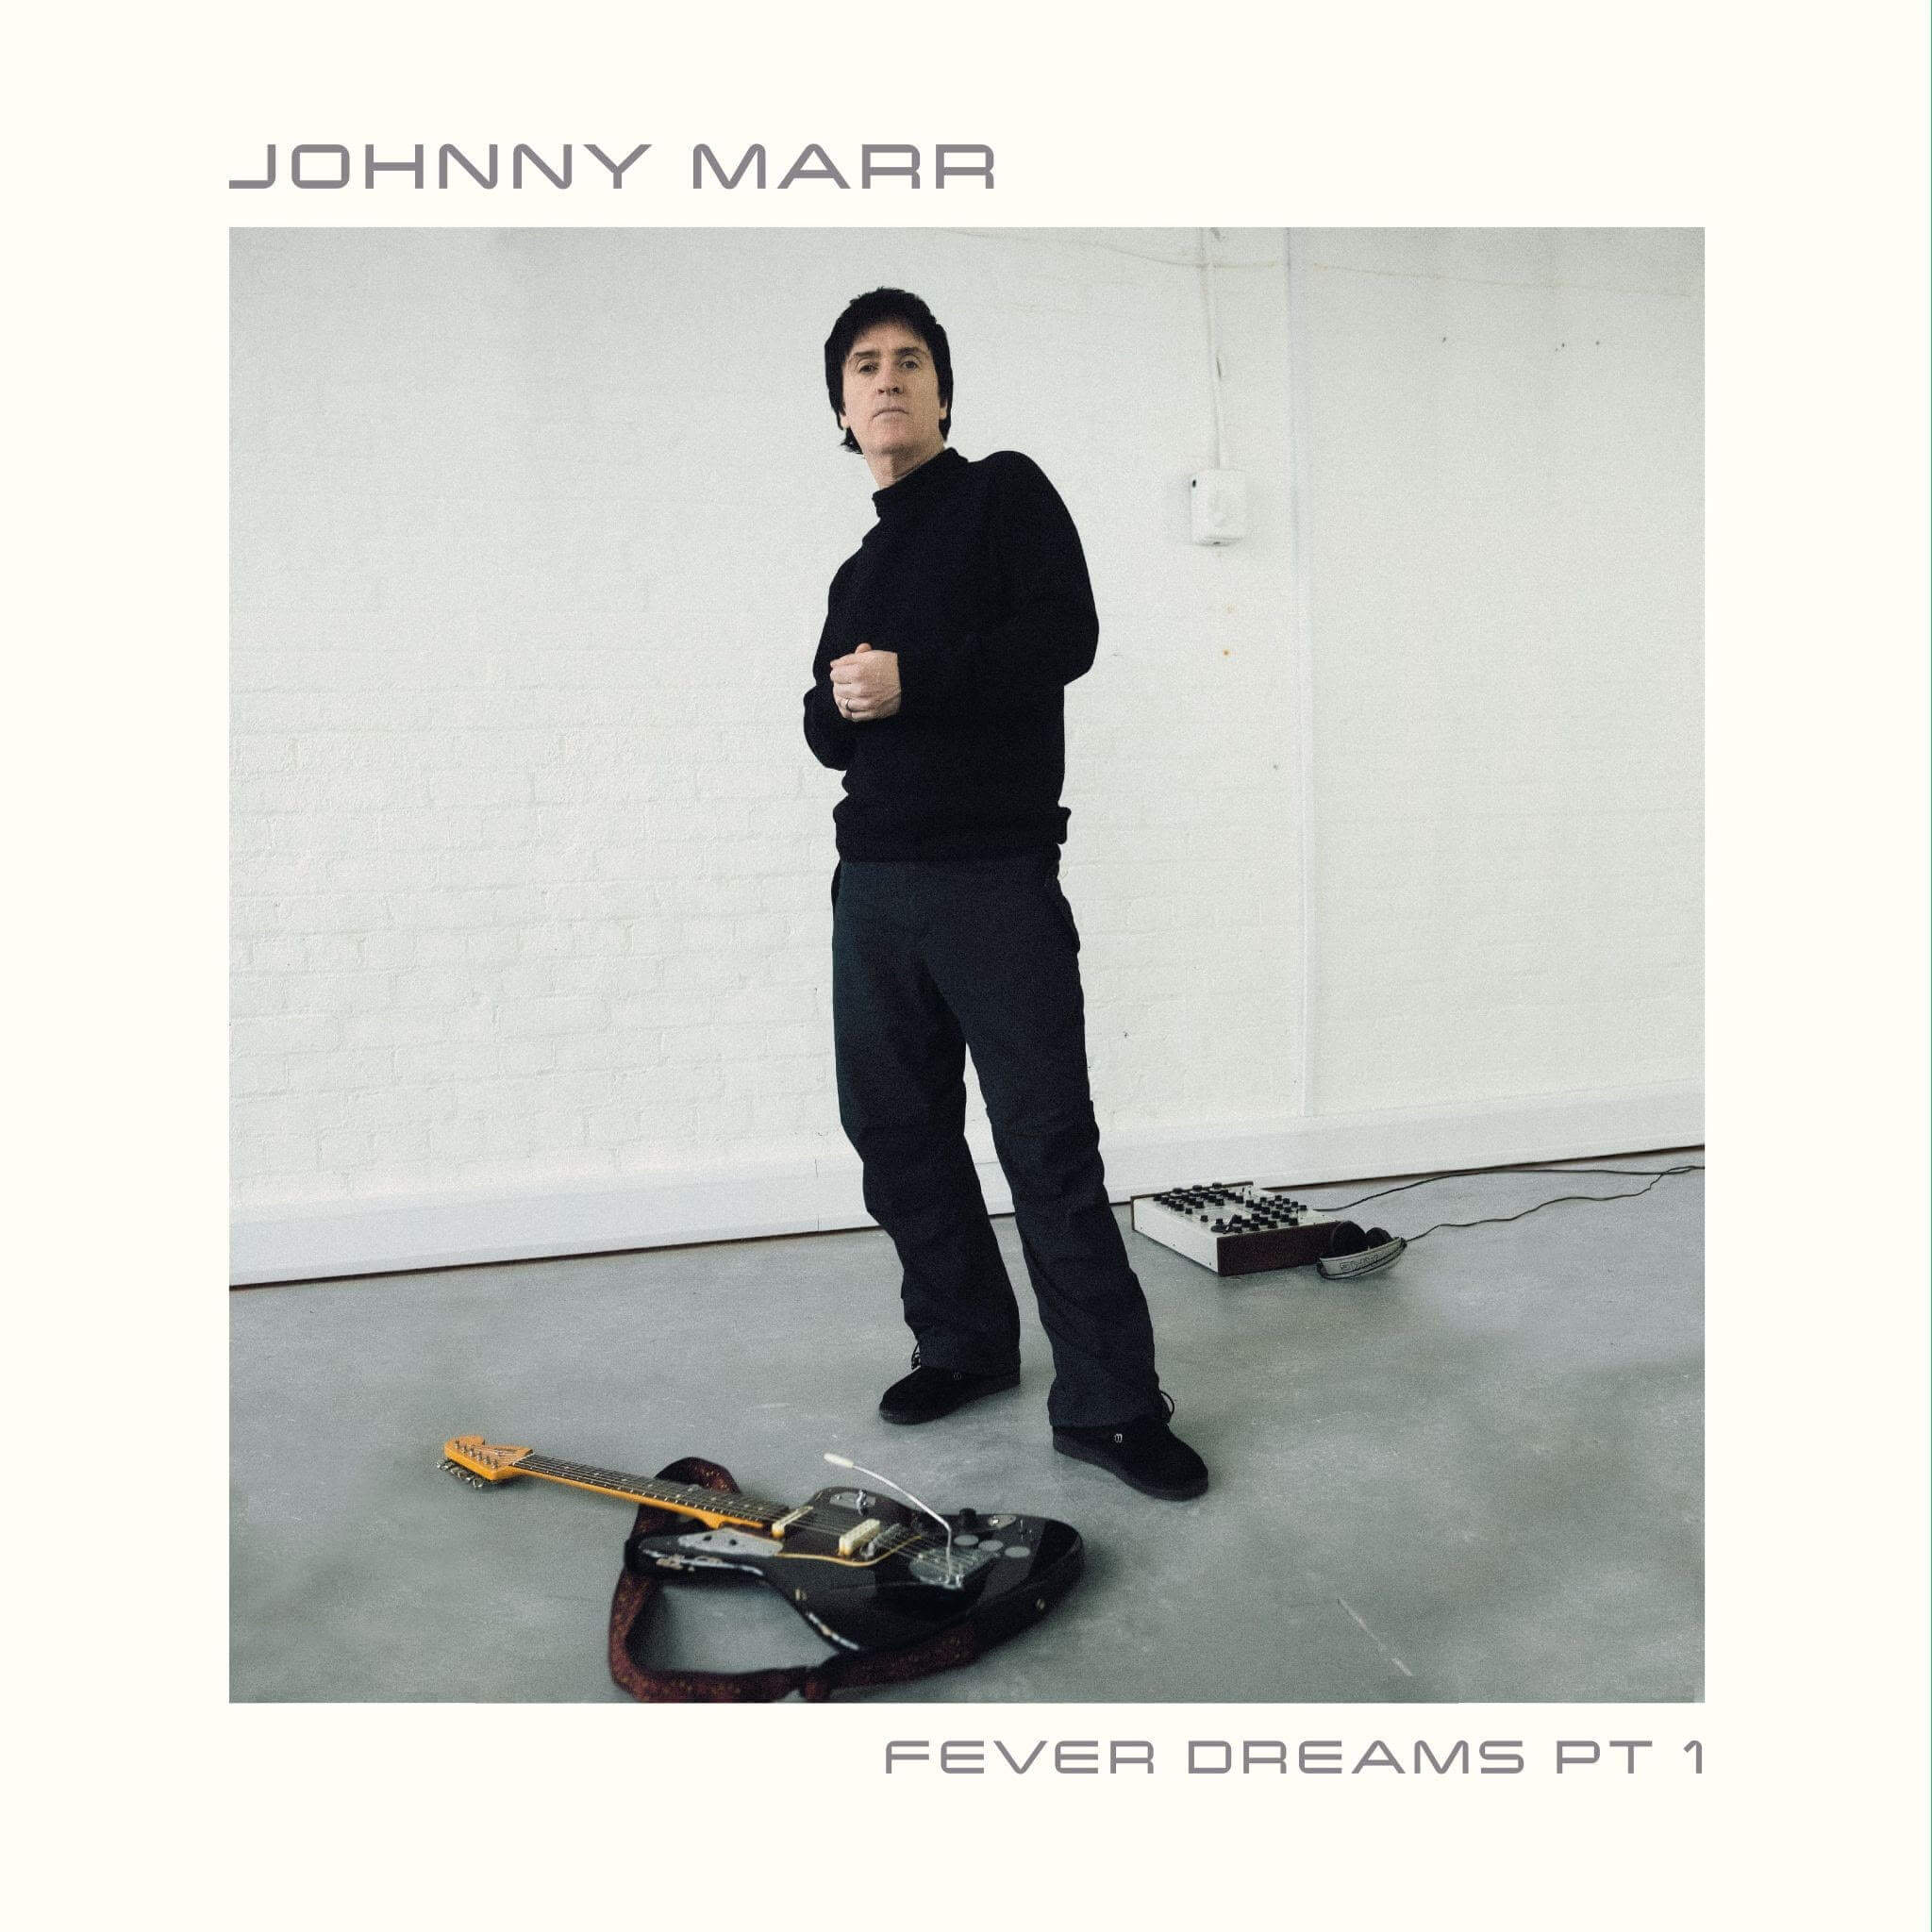 Fever Dreams Pts 1 by Johnny Marr Album review by Greg Walker for Northern Transmissions